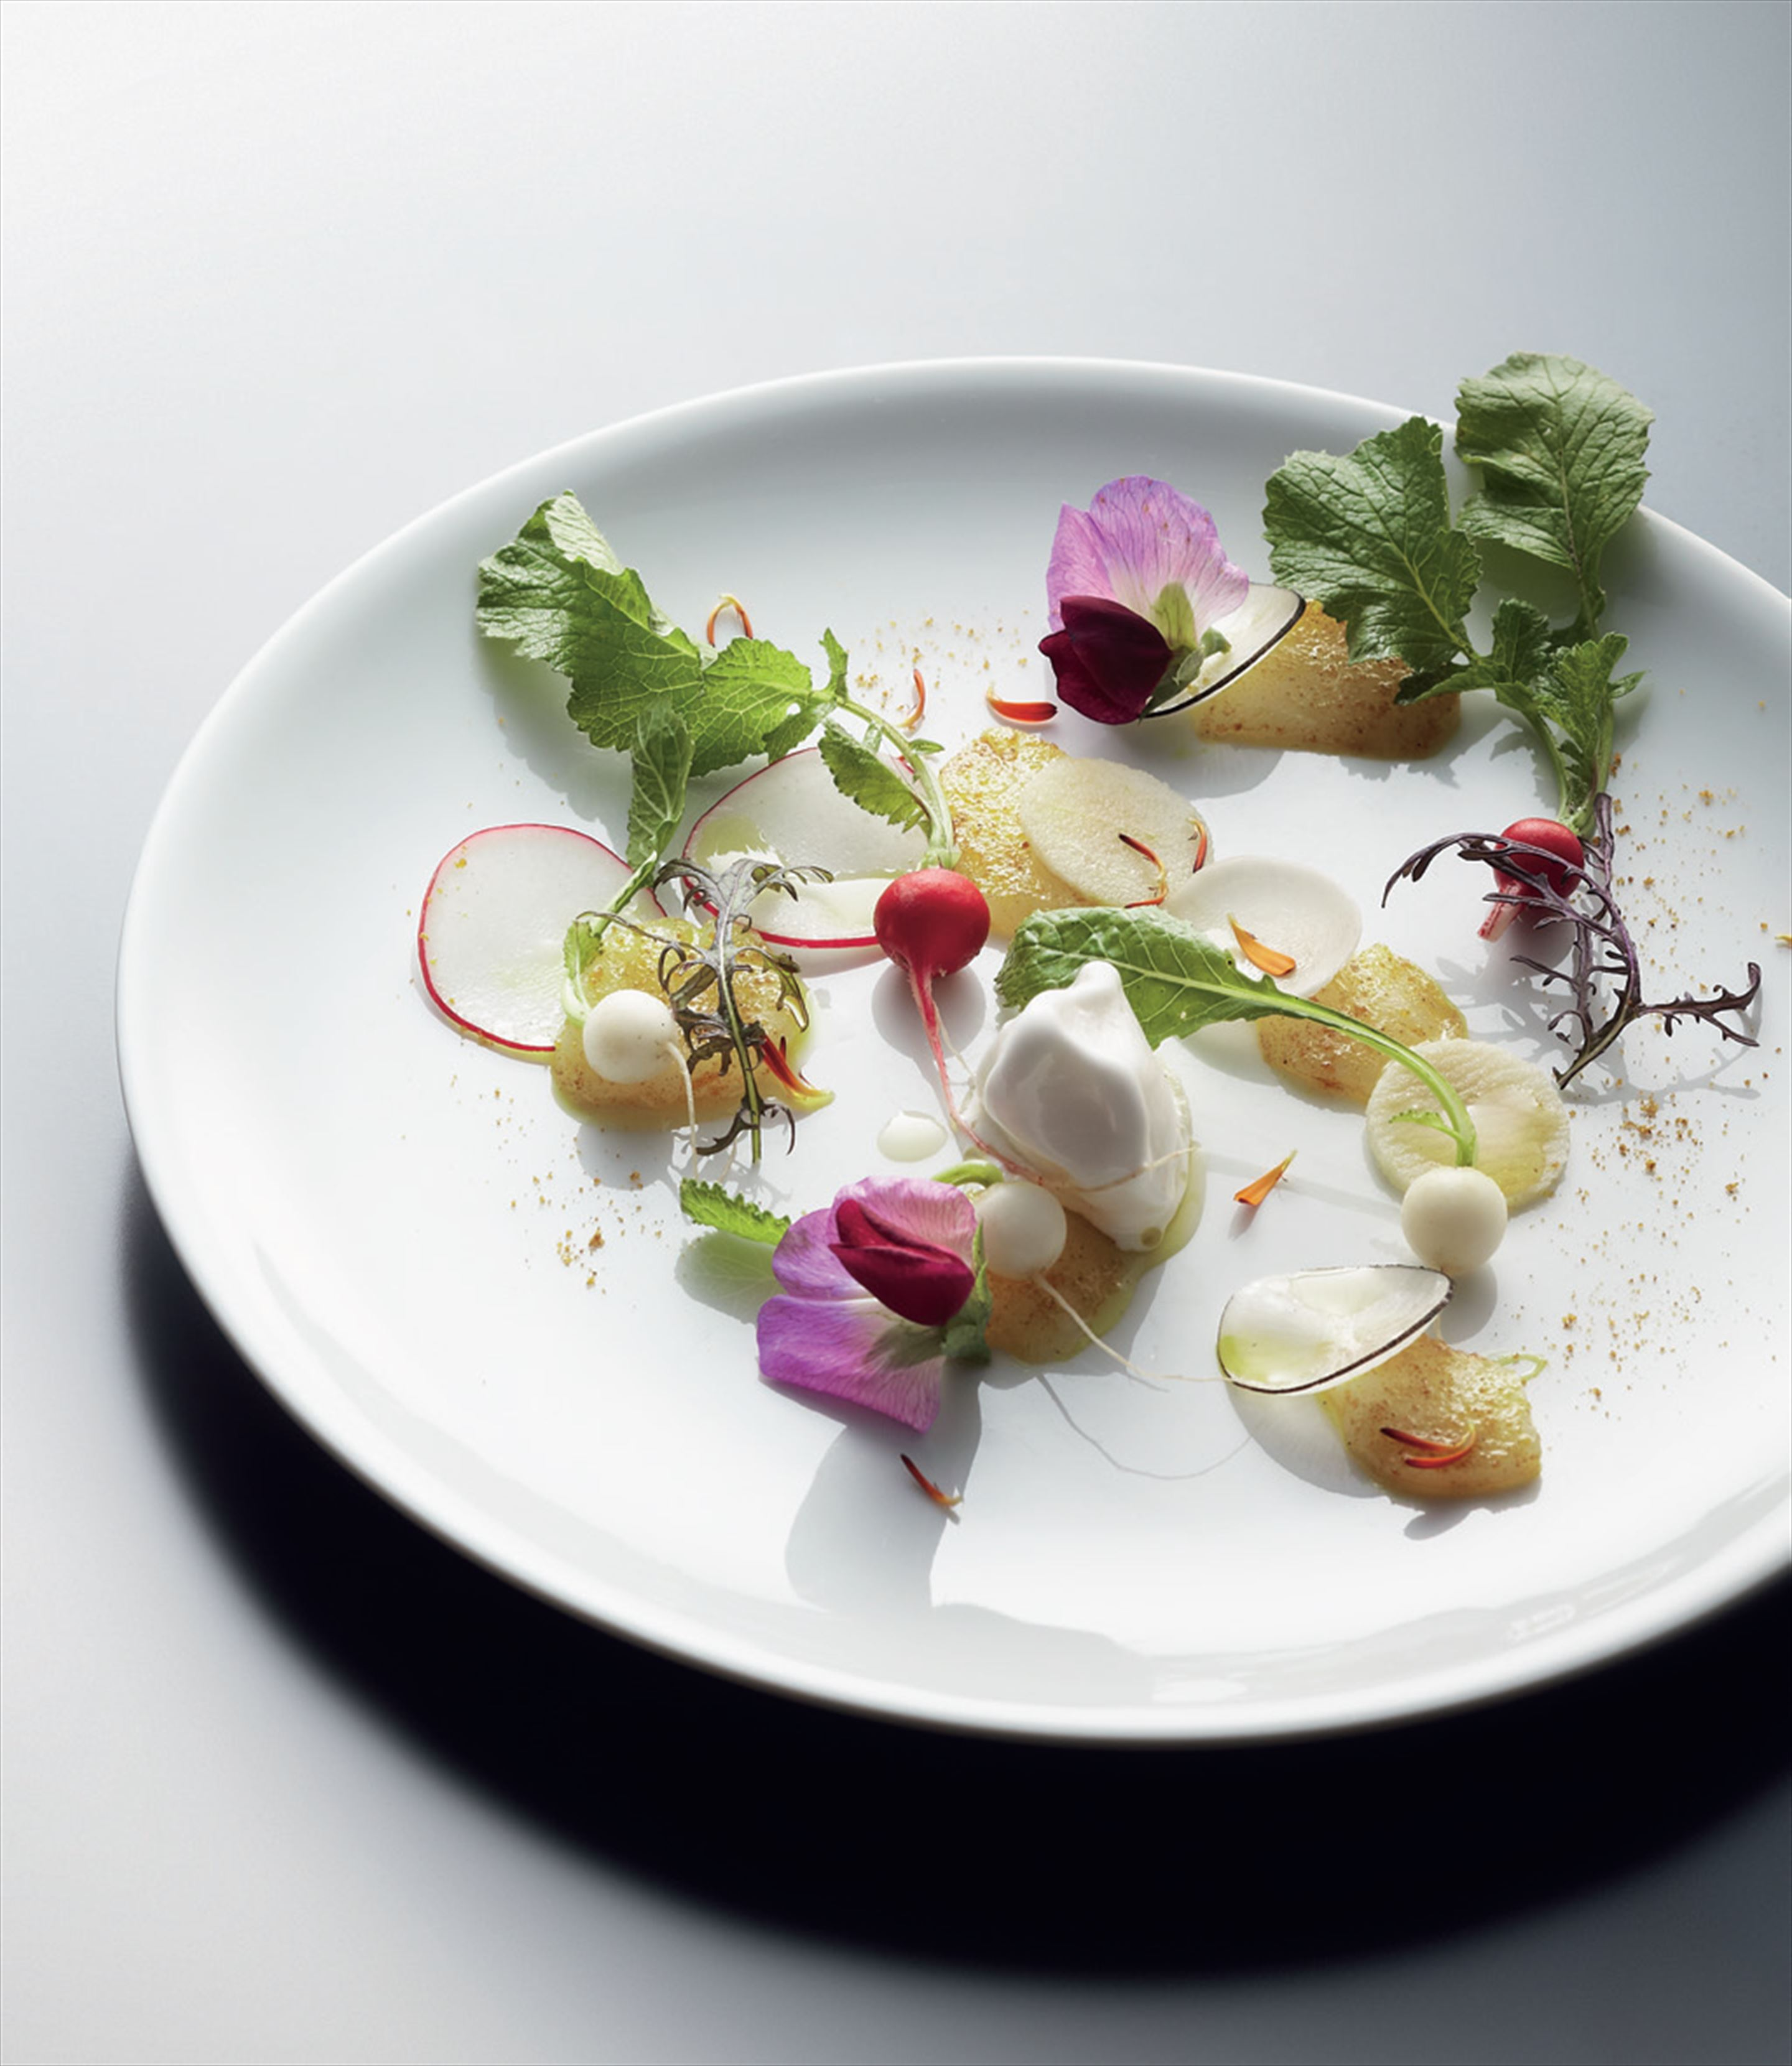 Spring bay scallops with vadouvan, radish, turnip and apple